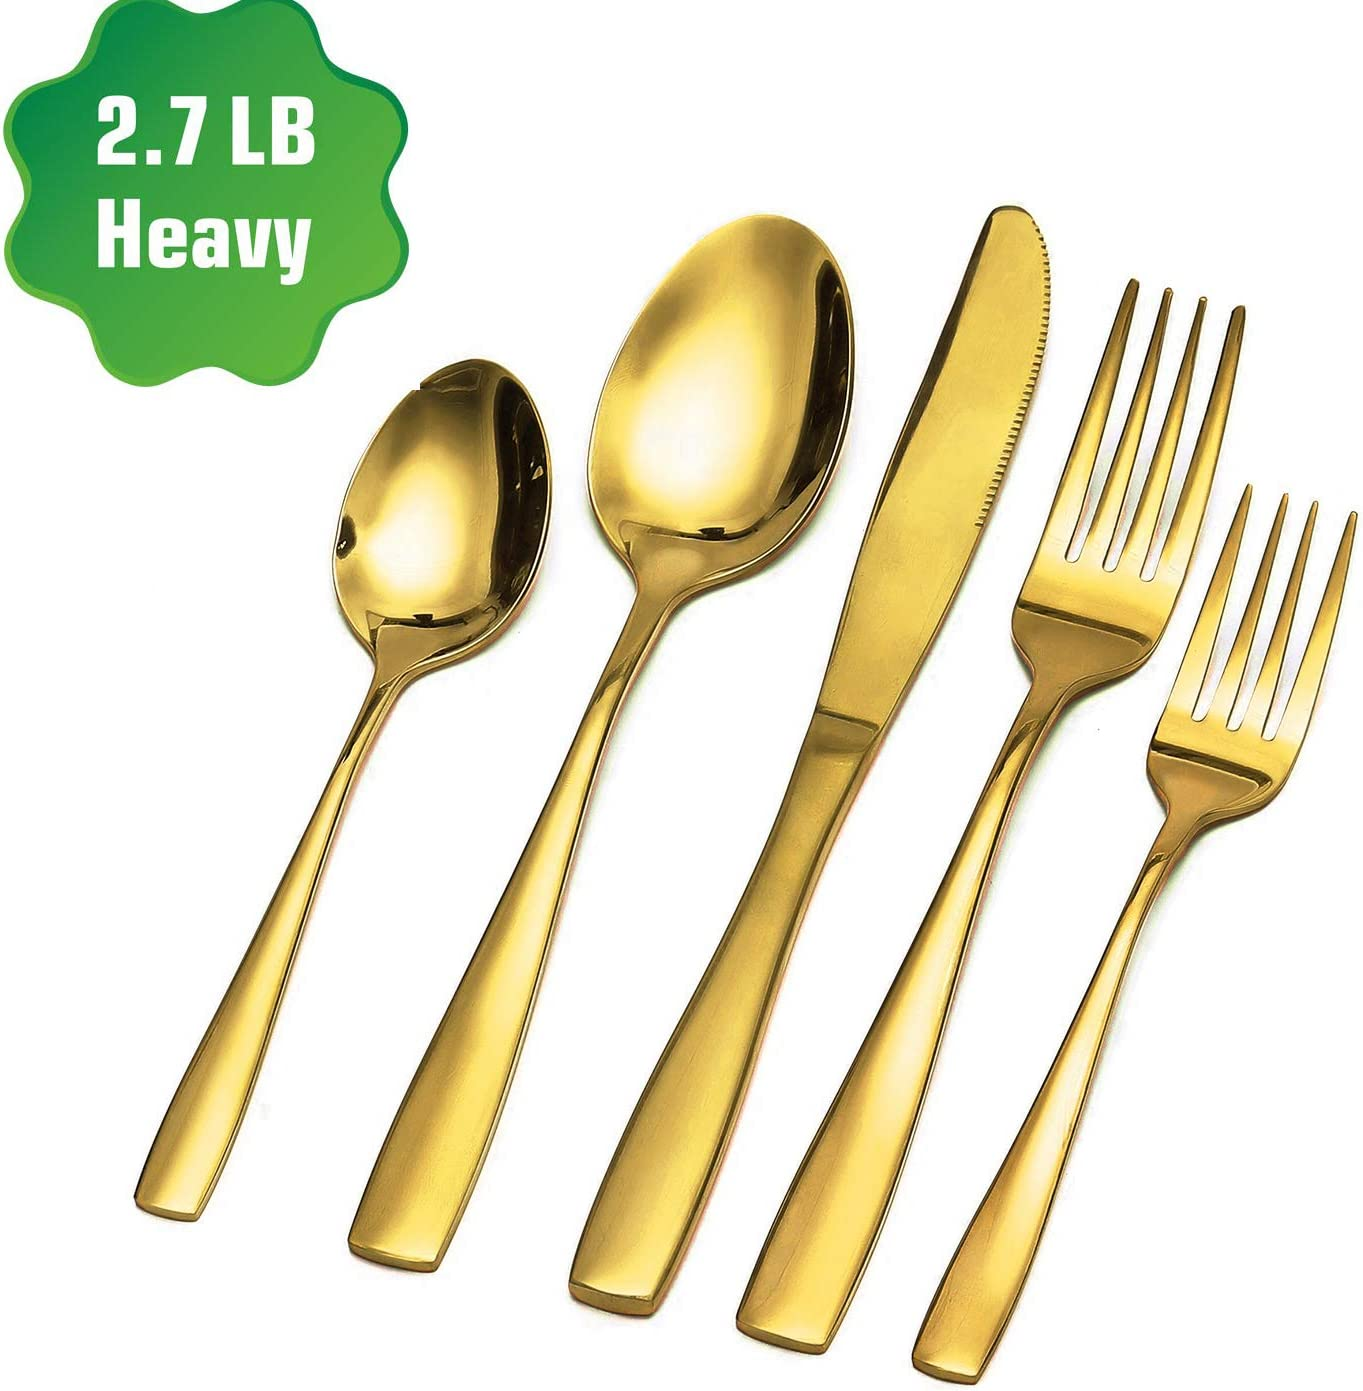 Zonegrace Gold Silverware Set,Mirror Finish 20-Piece Stainless Steel Flatware Cutlery Set,Kitchen Utensil Set Service for 4,Tableware Cutlery Set for Home Restaurant Wedding,Dishwasher Safe